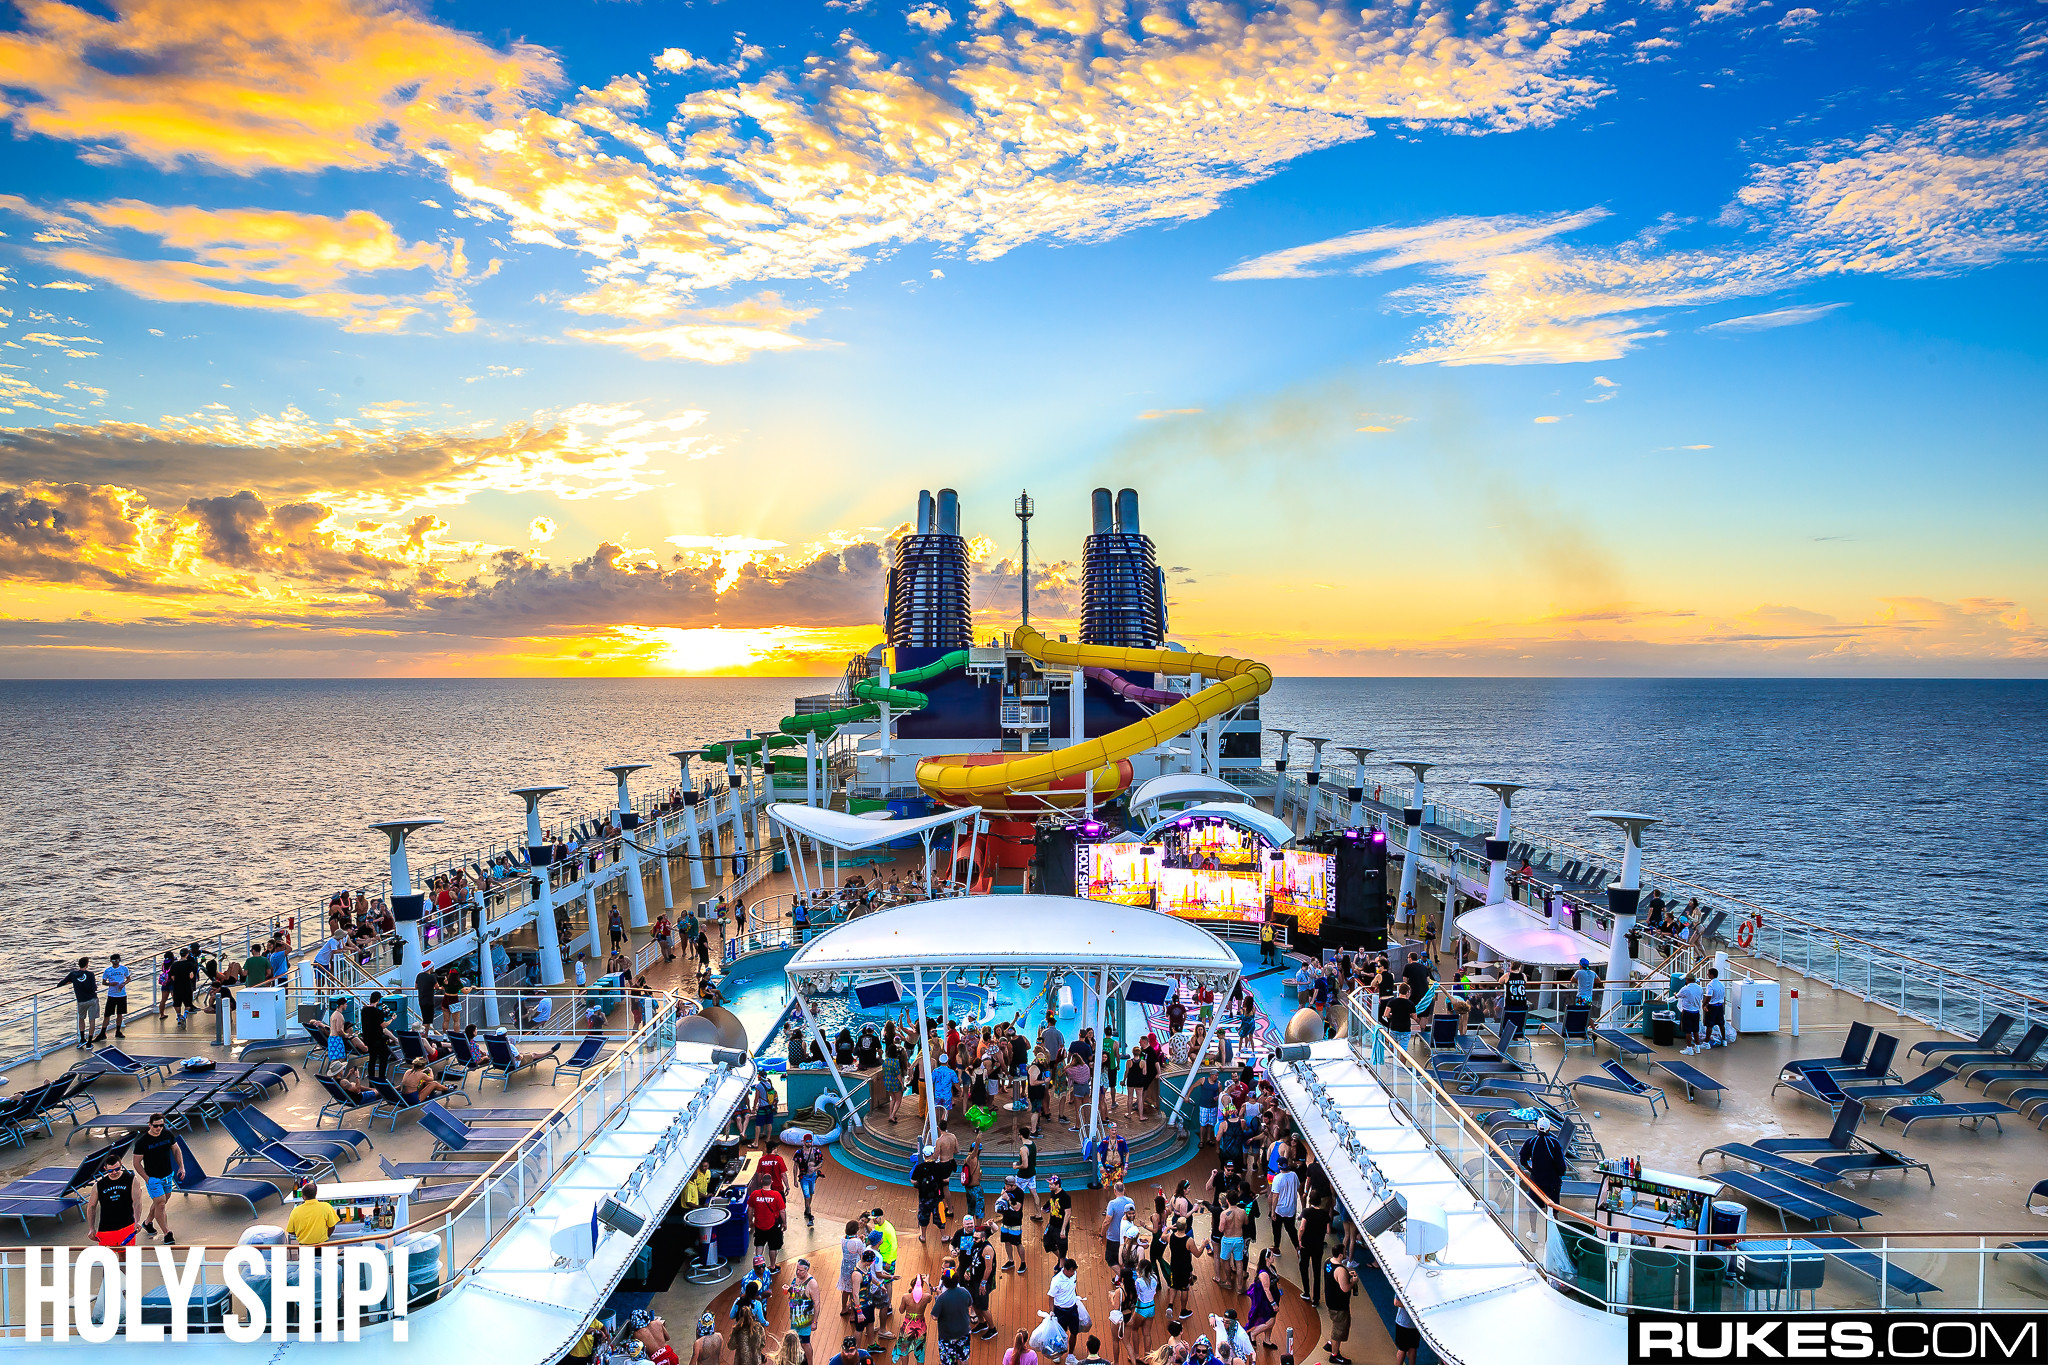 Holy Ship! Announces Lineup for Debut Holy Ship! Wrecked